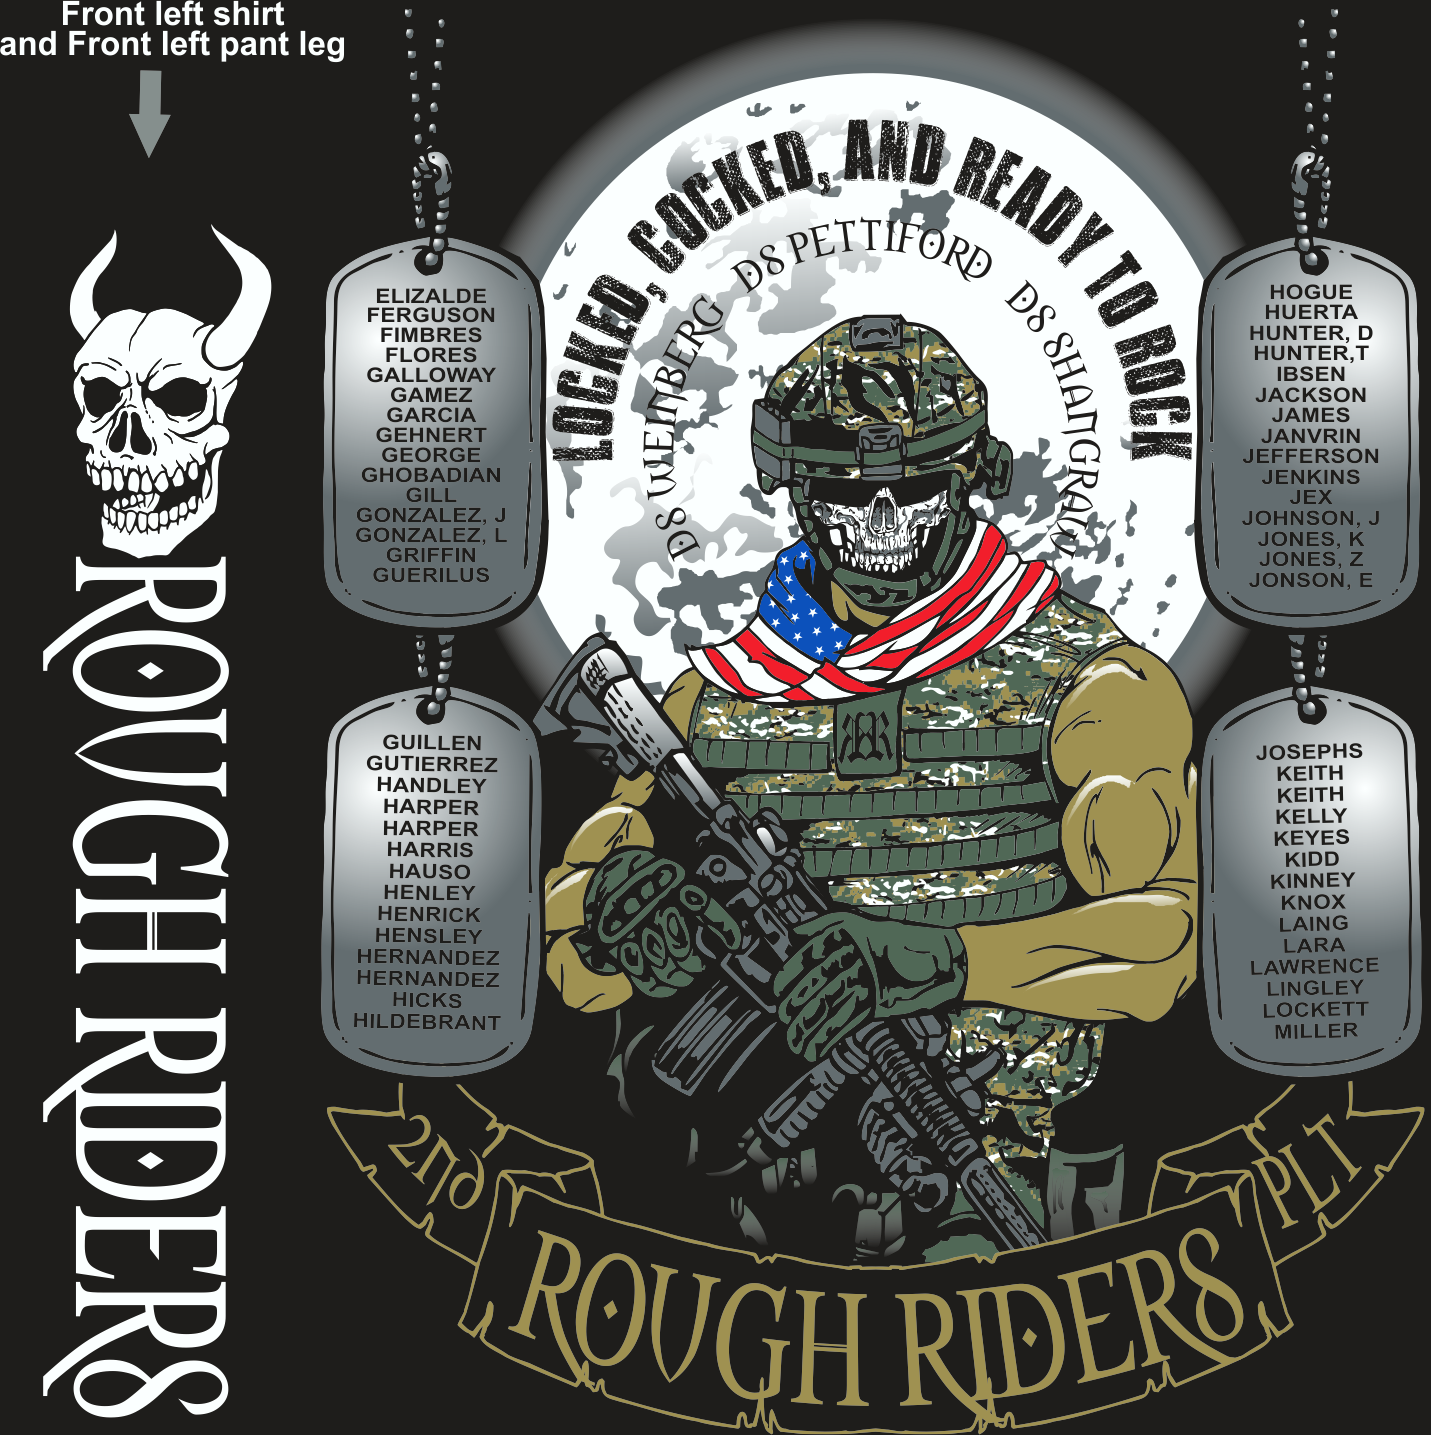 CHARLIE 1-48 ROUGH RIDERS GRADUATING DAY 10-15-2015 digital